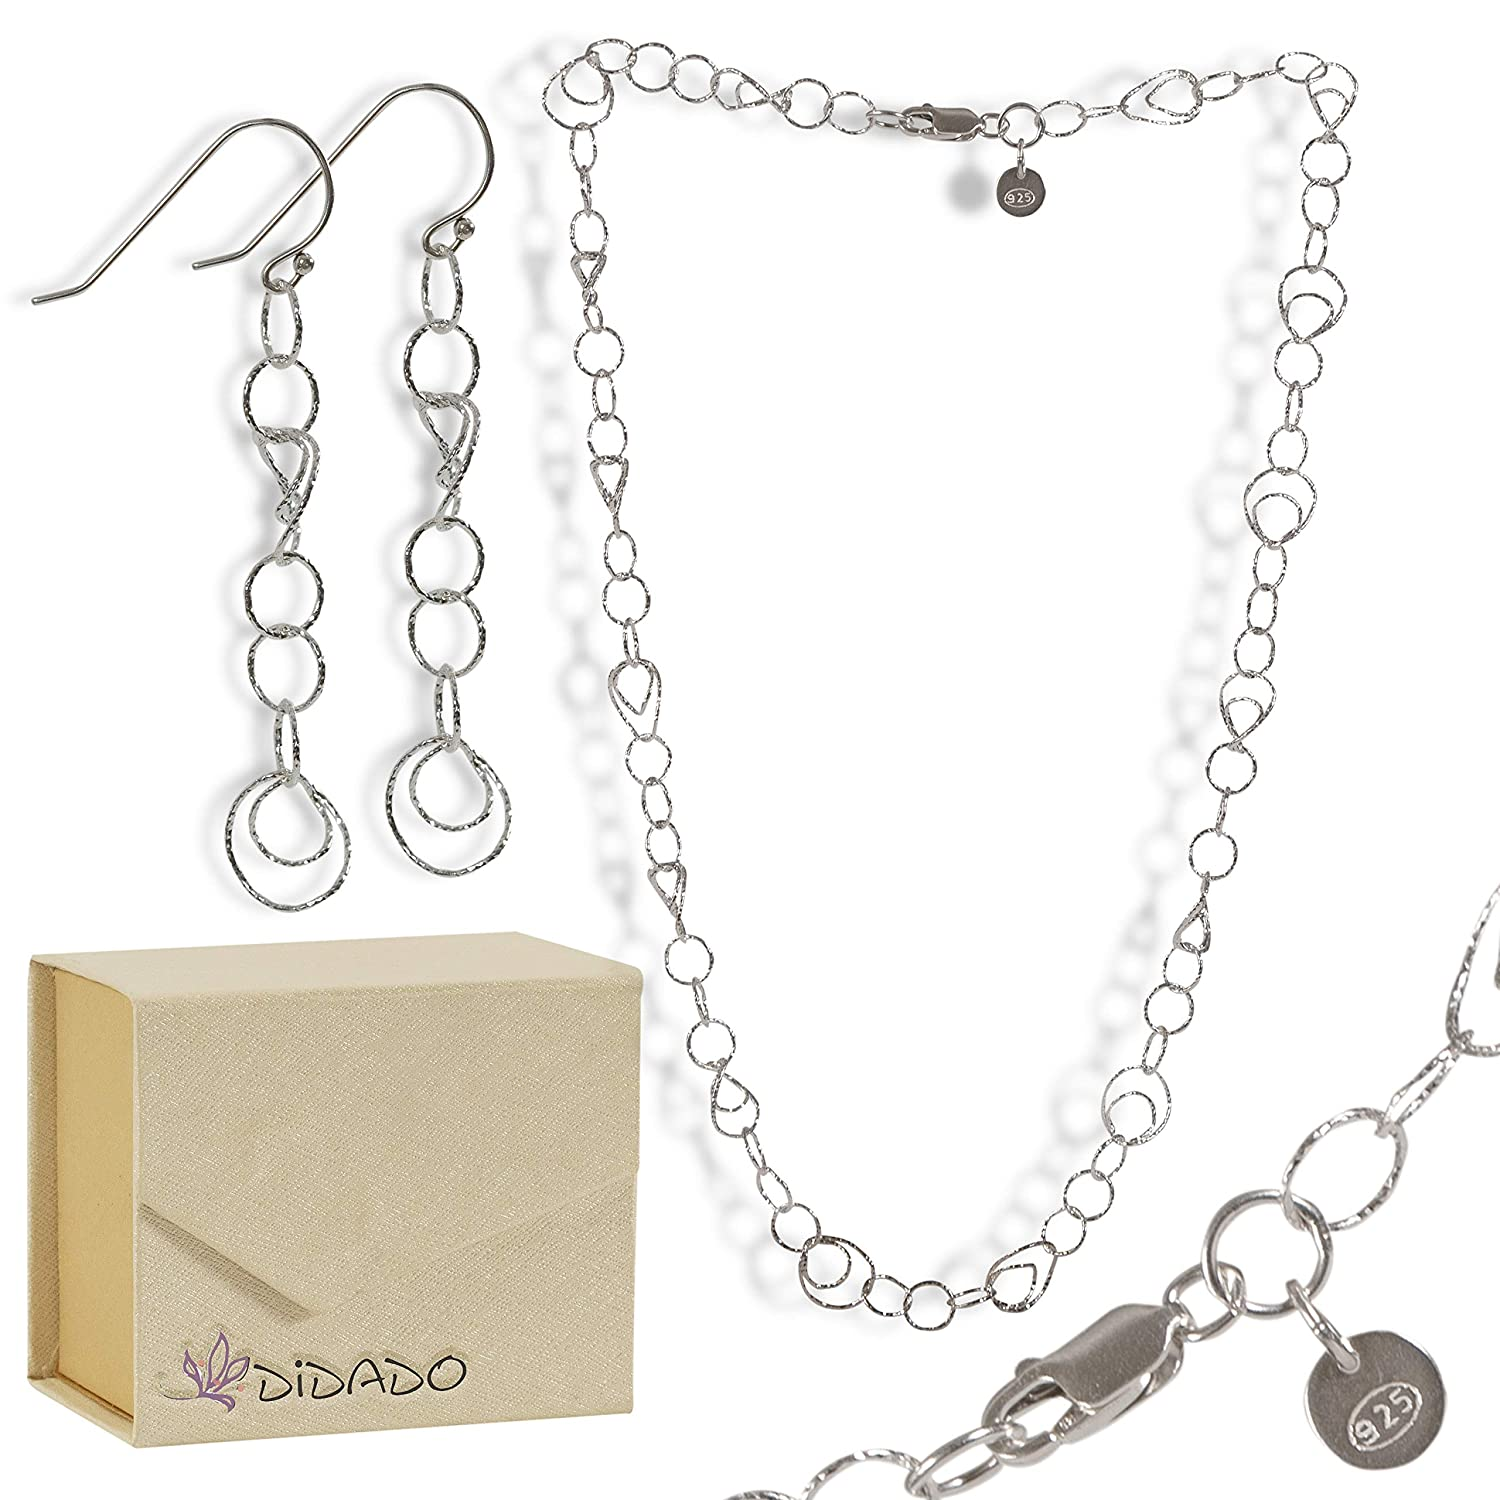 DiDaDo Sterling Silver Twisted Links Statement Chain with Bonus Pair of Earrings